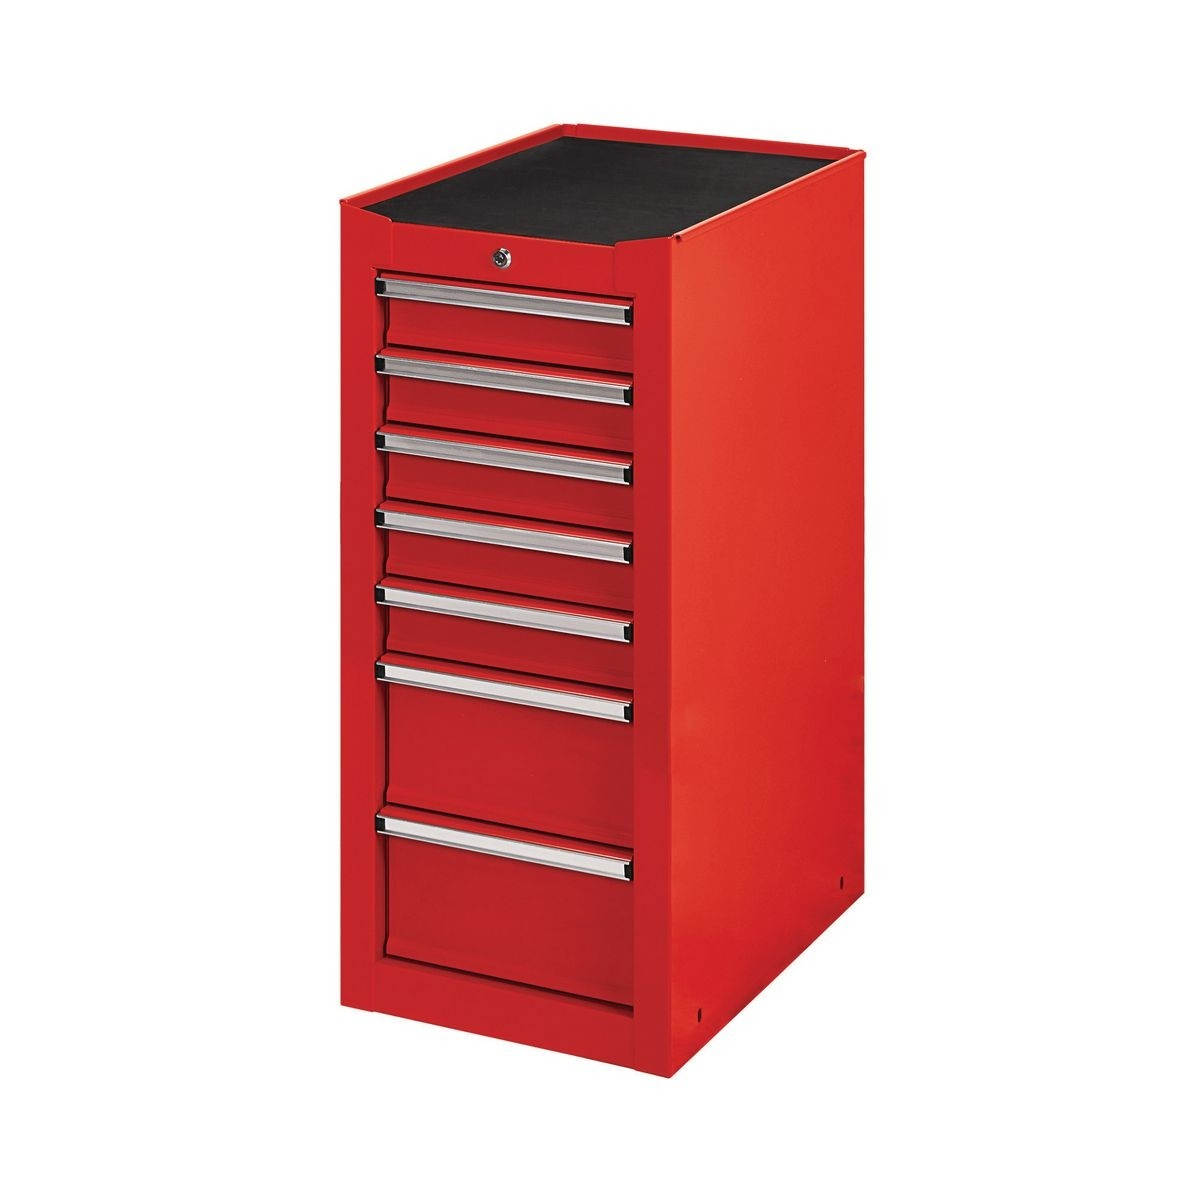 U.S. GENERAL 14.5 In. End Cabinet – Red – Item 64358 / 64159